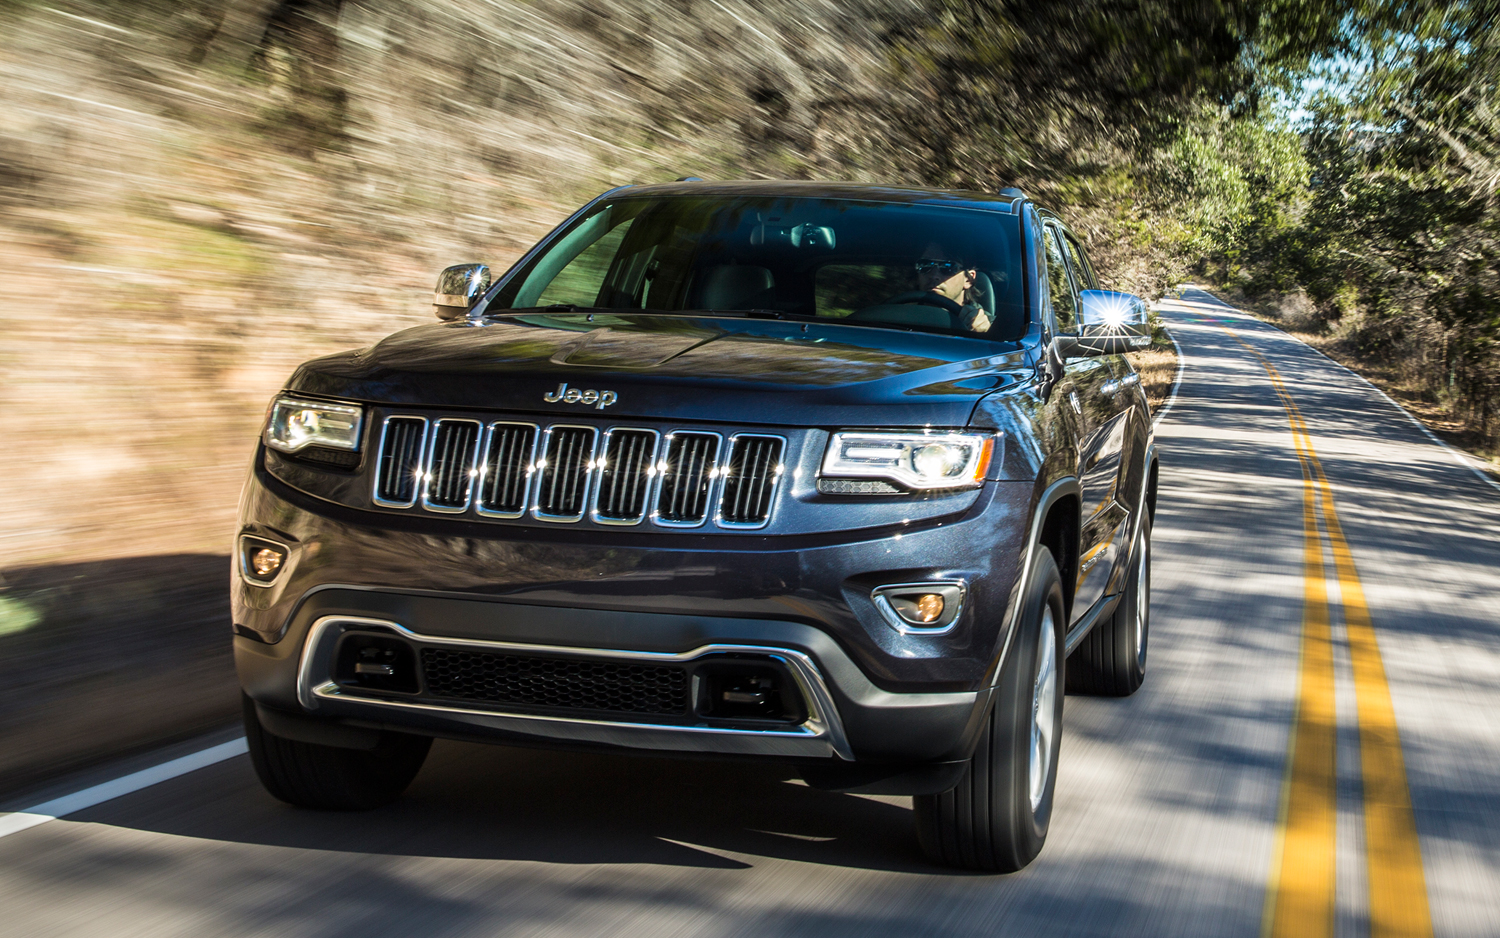 Superior 2014 Jeep Grand Cherokee EcoDiesel First Drive